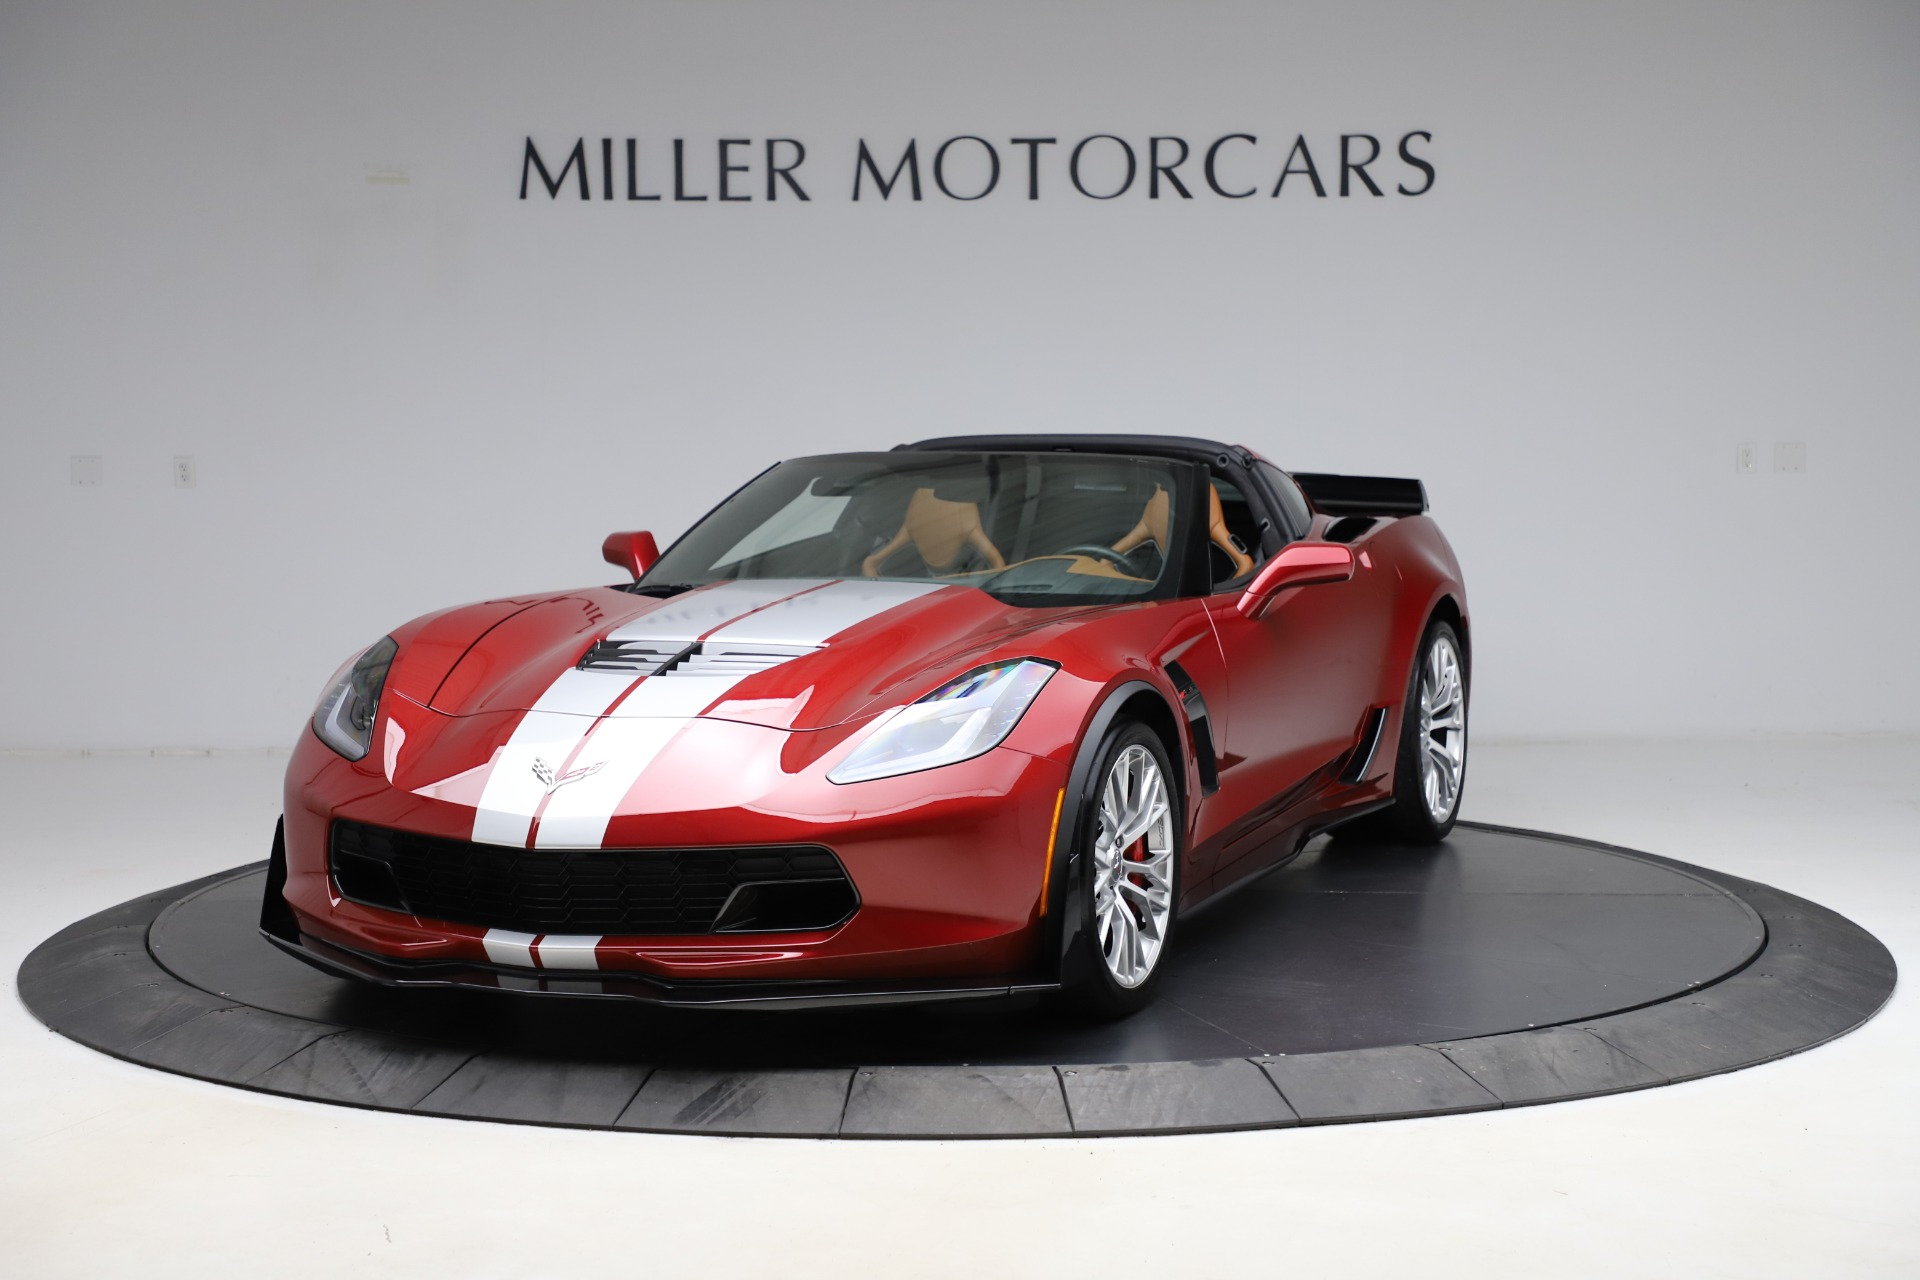 Used 2015 Chevrolet Corvette Z06 for sale $85,900 at Bentley Greenwich in Greenwich CT 06830 1